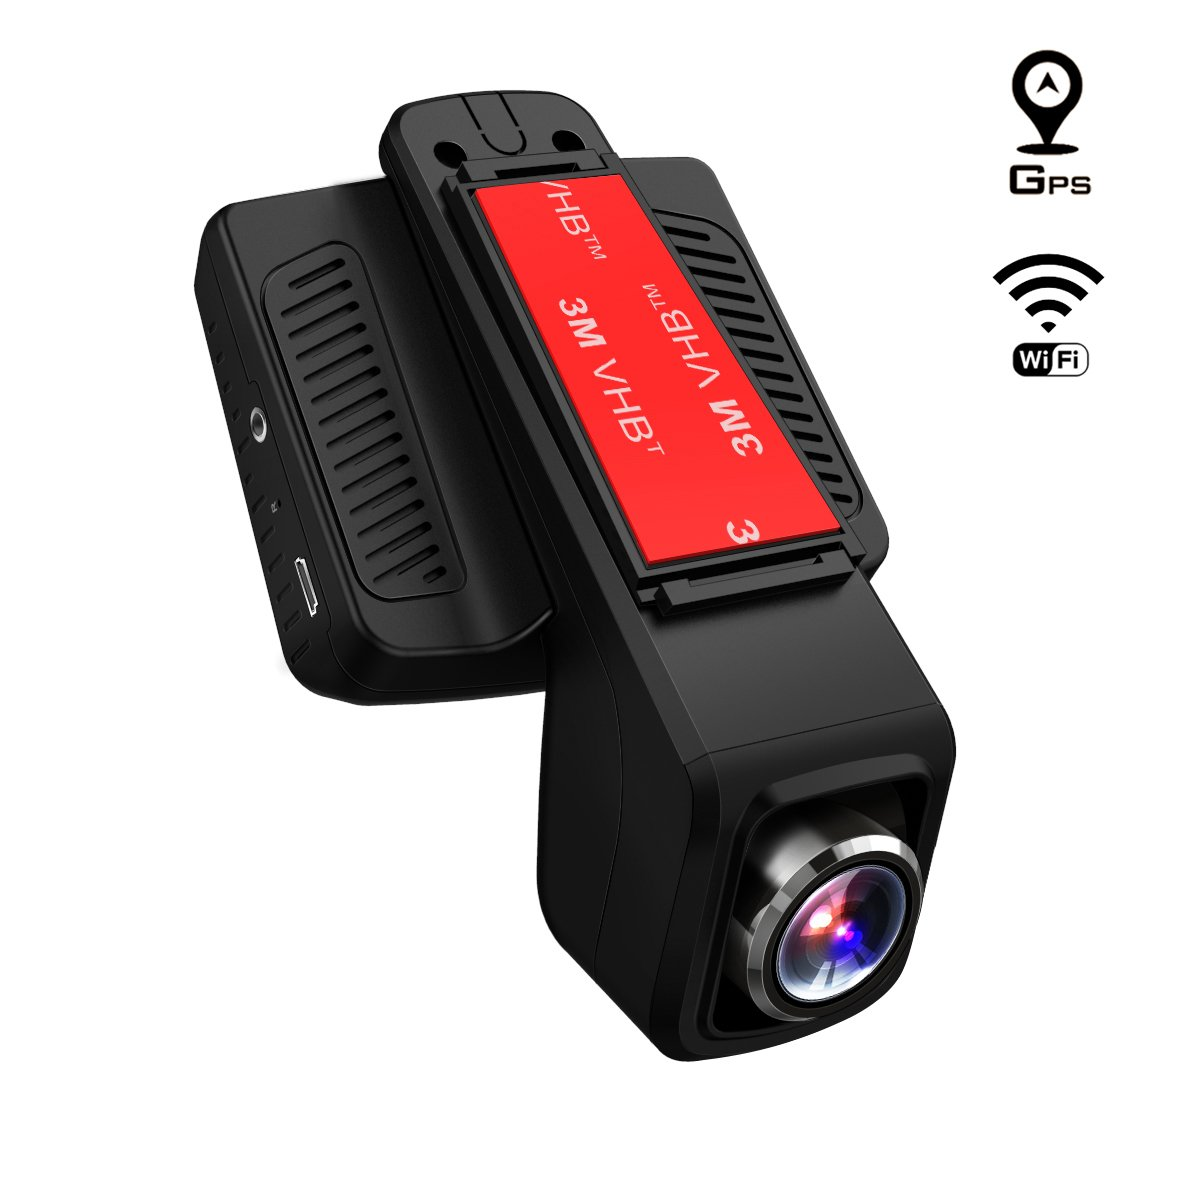 Dashcam with GPS and WIFI